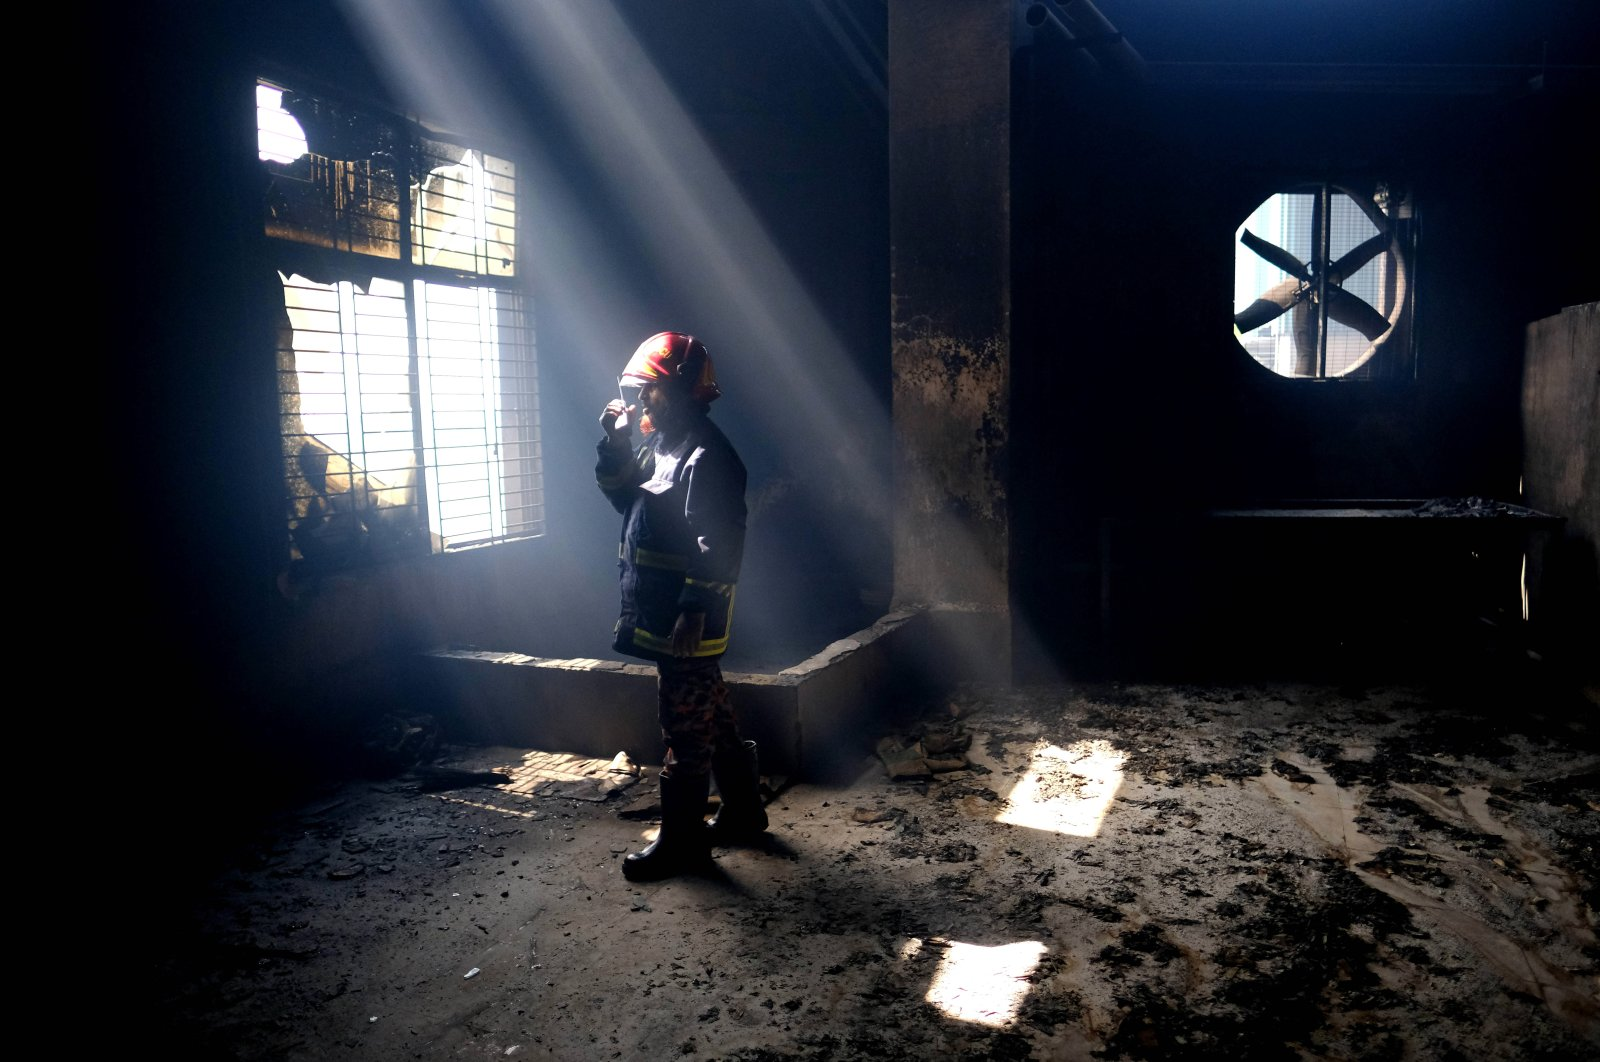 A firefighter communicates with his colleagues on a walkie-talkie inside the burnt food and beverage factory in Rupganj, outside Dhaka, Bangladesh, July 9, 2021. (AP Photo)